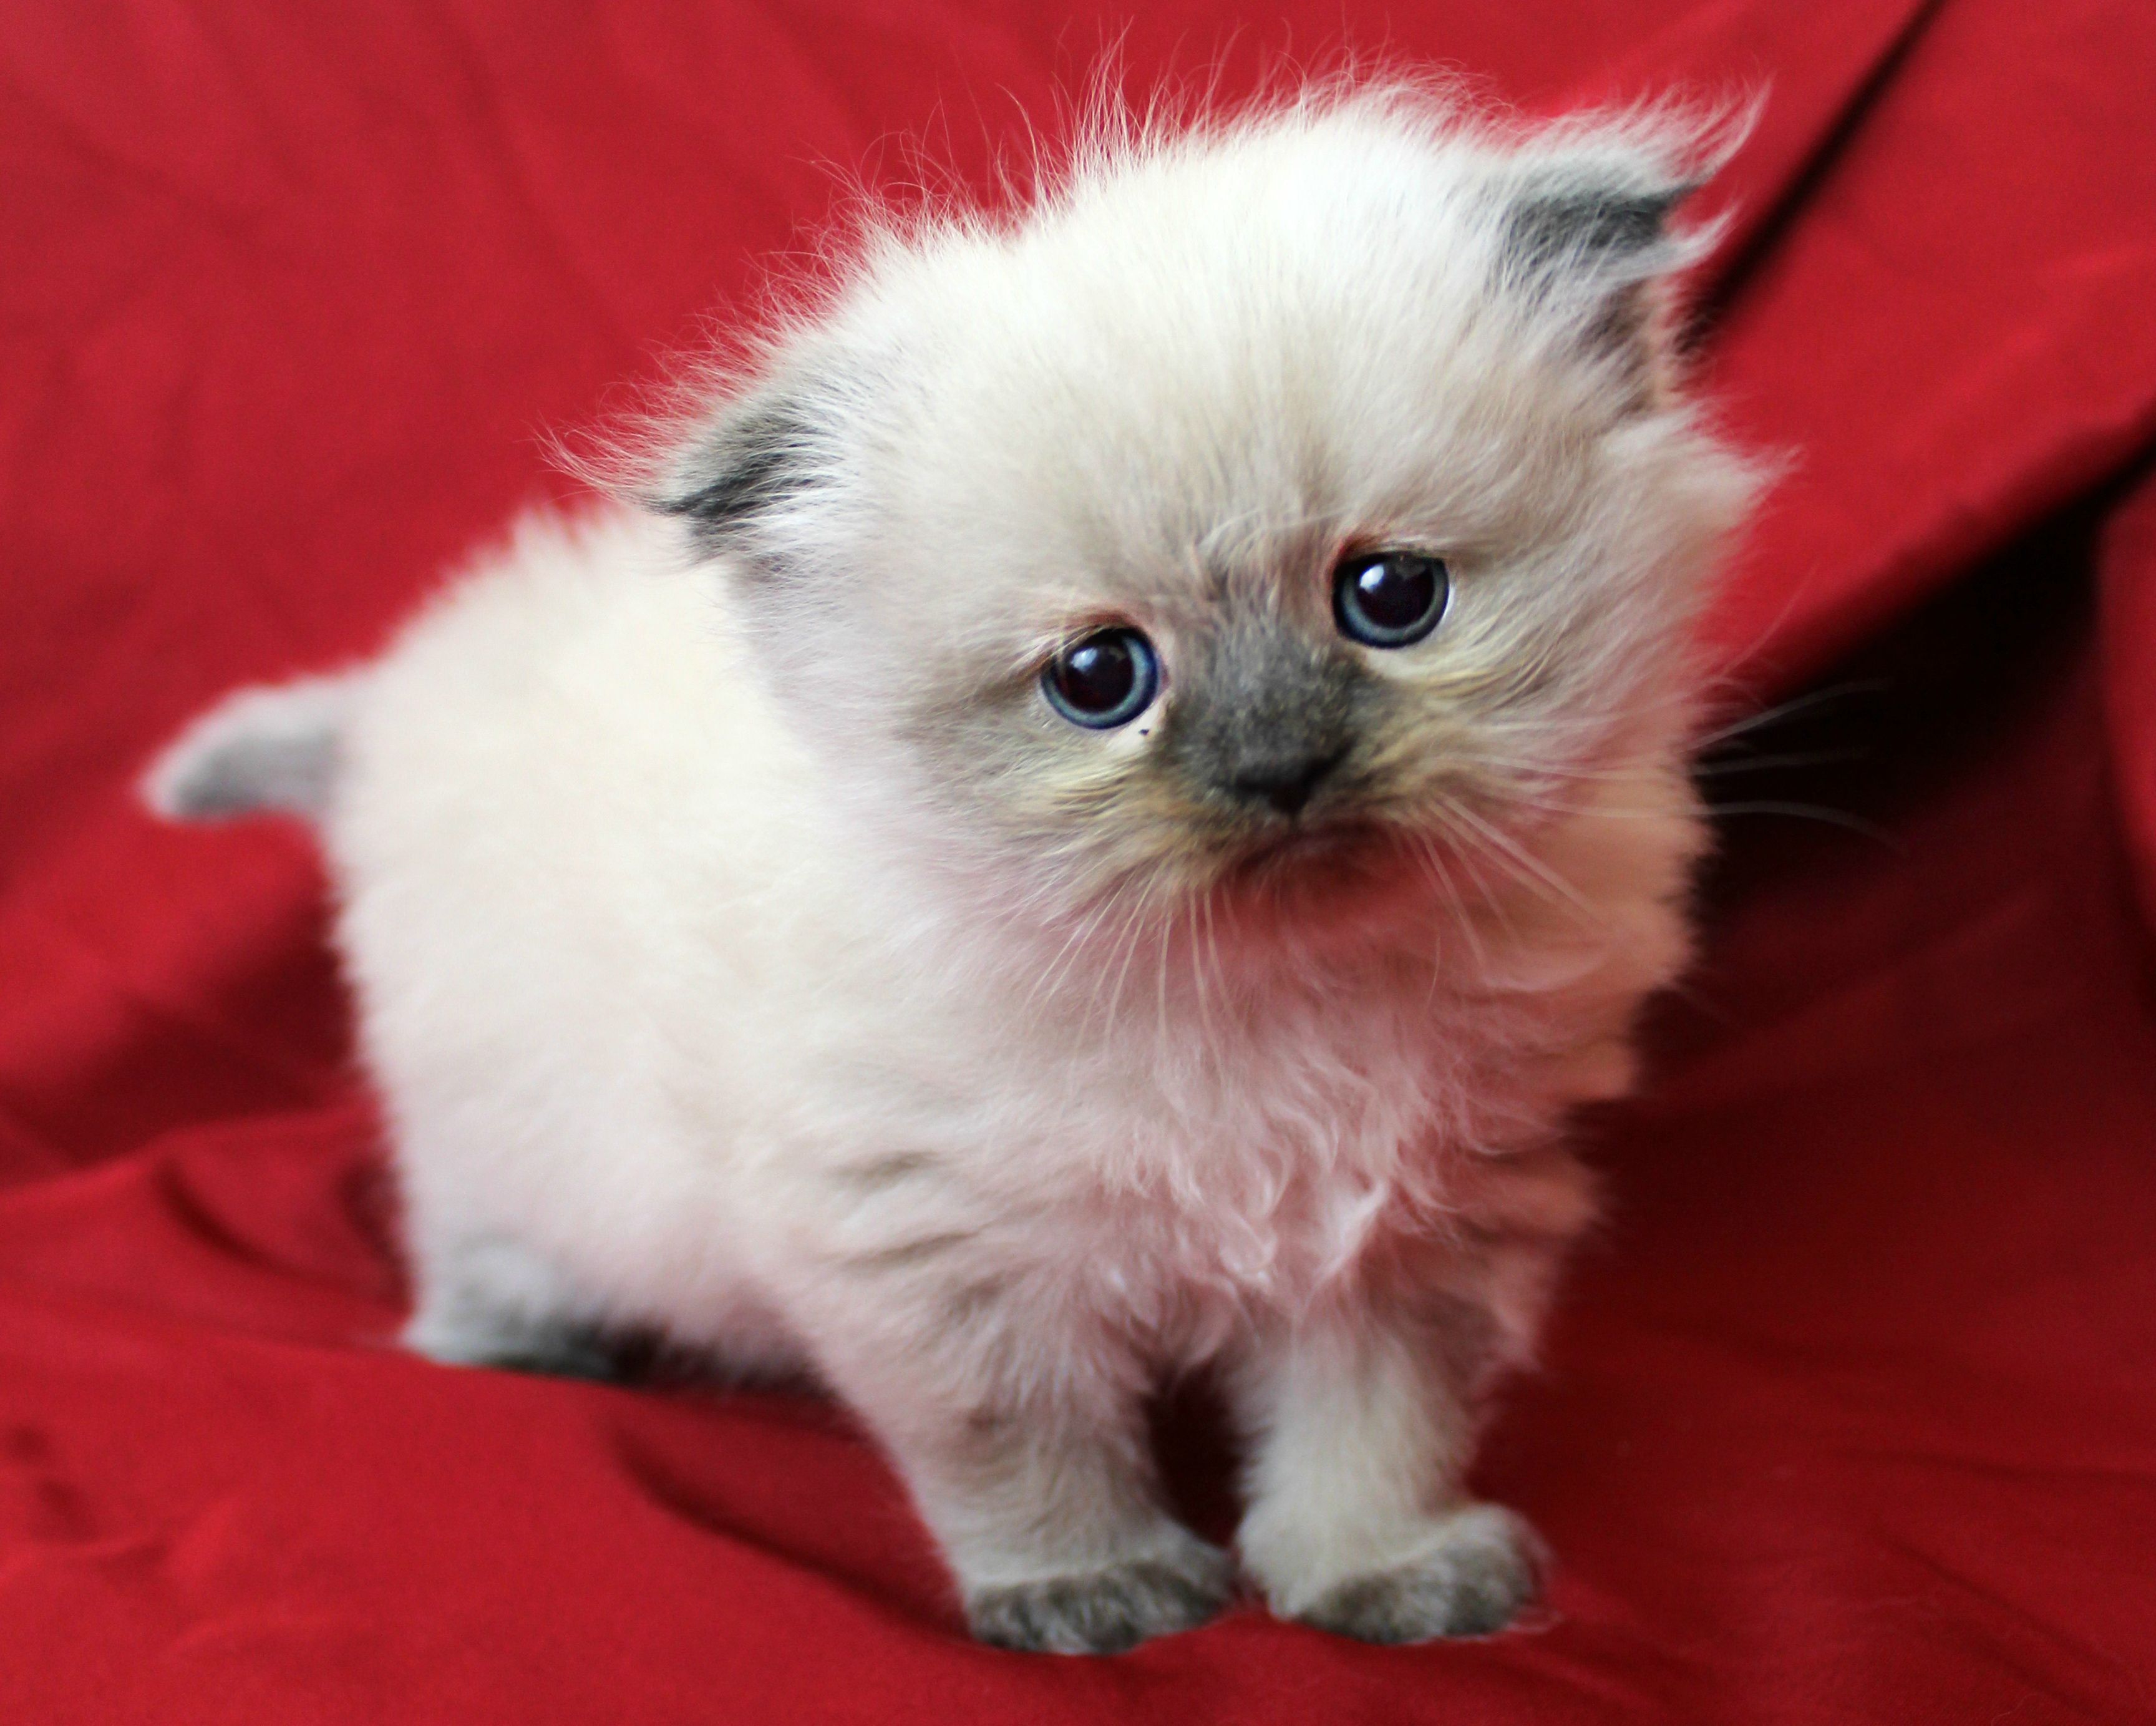 Danielsdencats Himalayan Cats And Kittens Of Augusta Georgia Cats Cats And Kittens Cute Cats